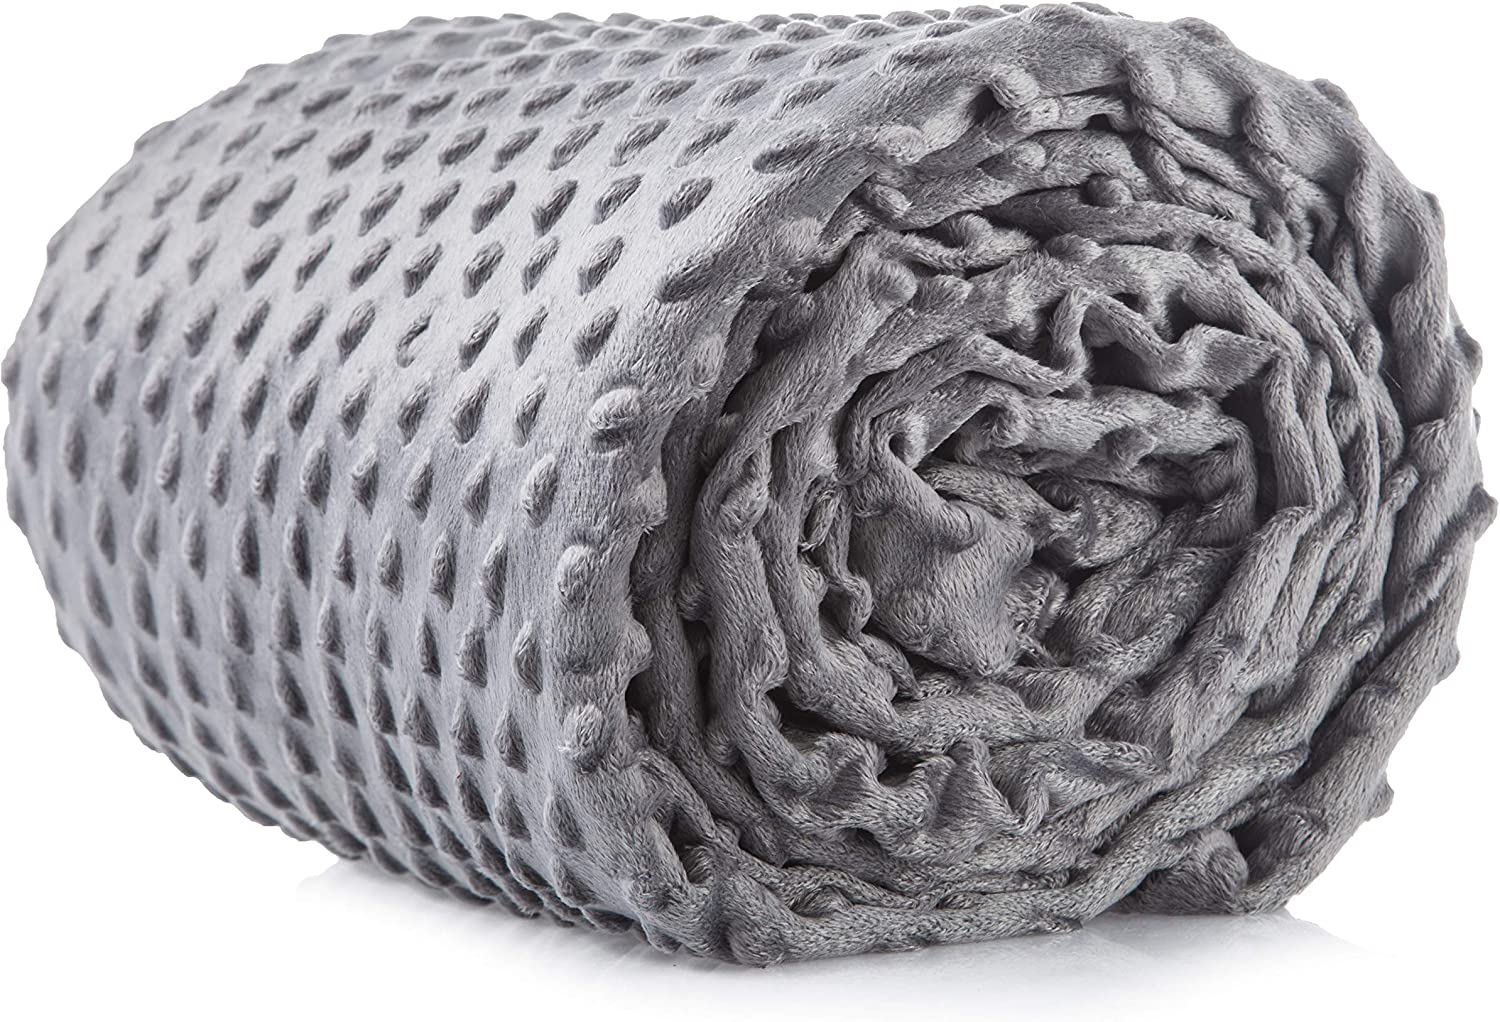 Cooshi Weighted Blanket Cover - 16 Ties - Soft and Machine Washable (Grey, 48 x 72)